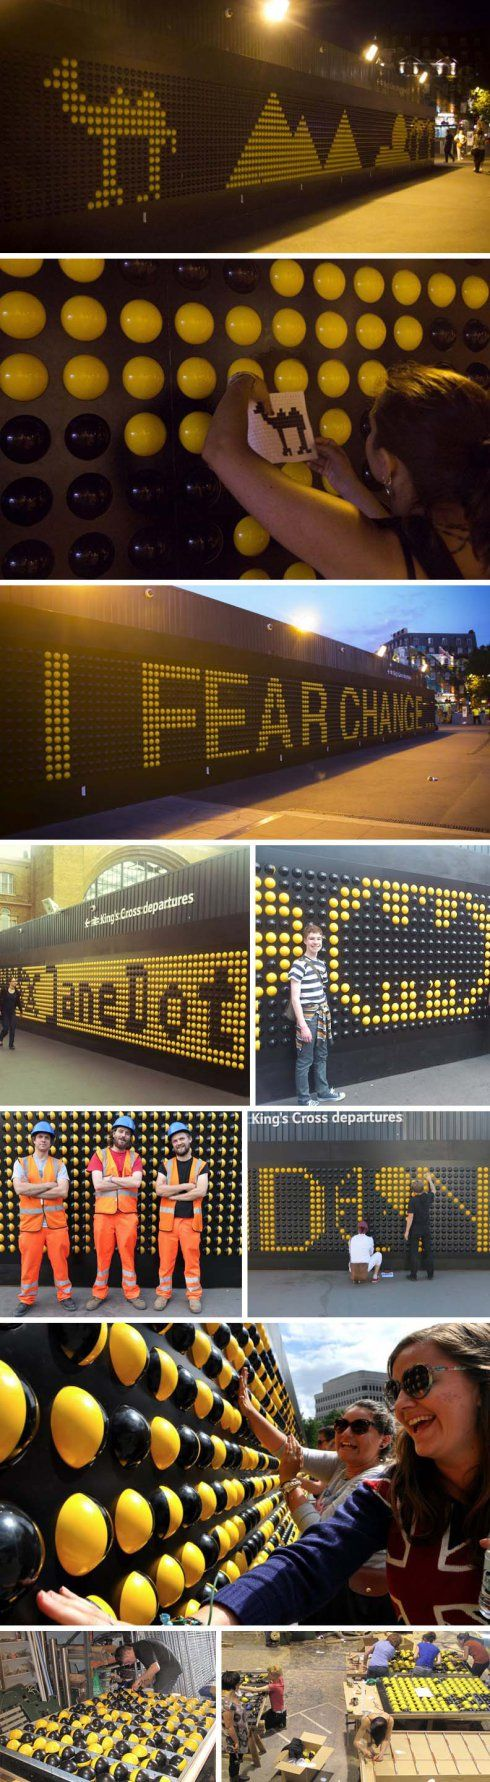 The Song Board is a multi-sensory interactive by Alexander Goller / Located at the entrance to King's Cross Station